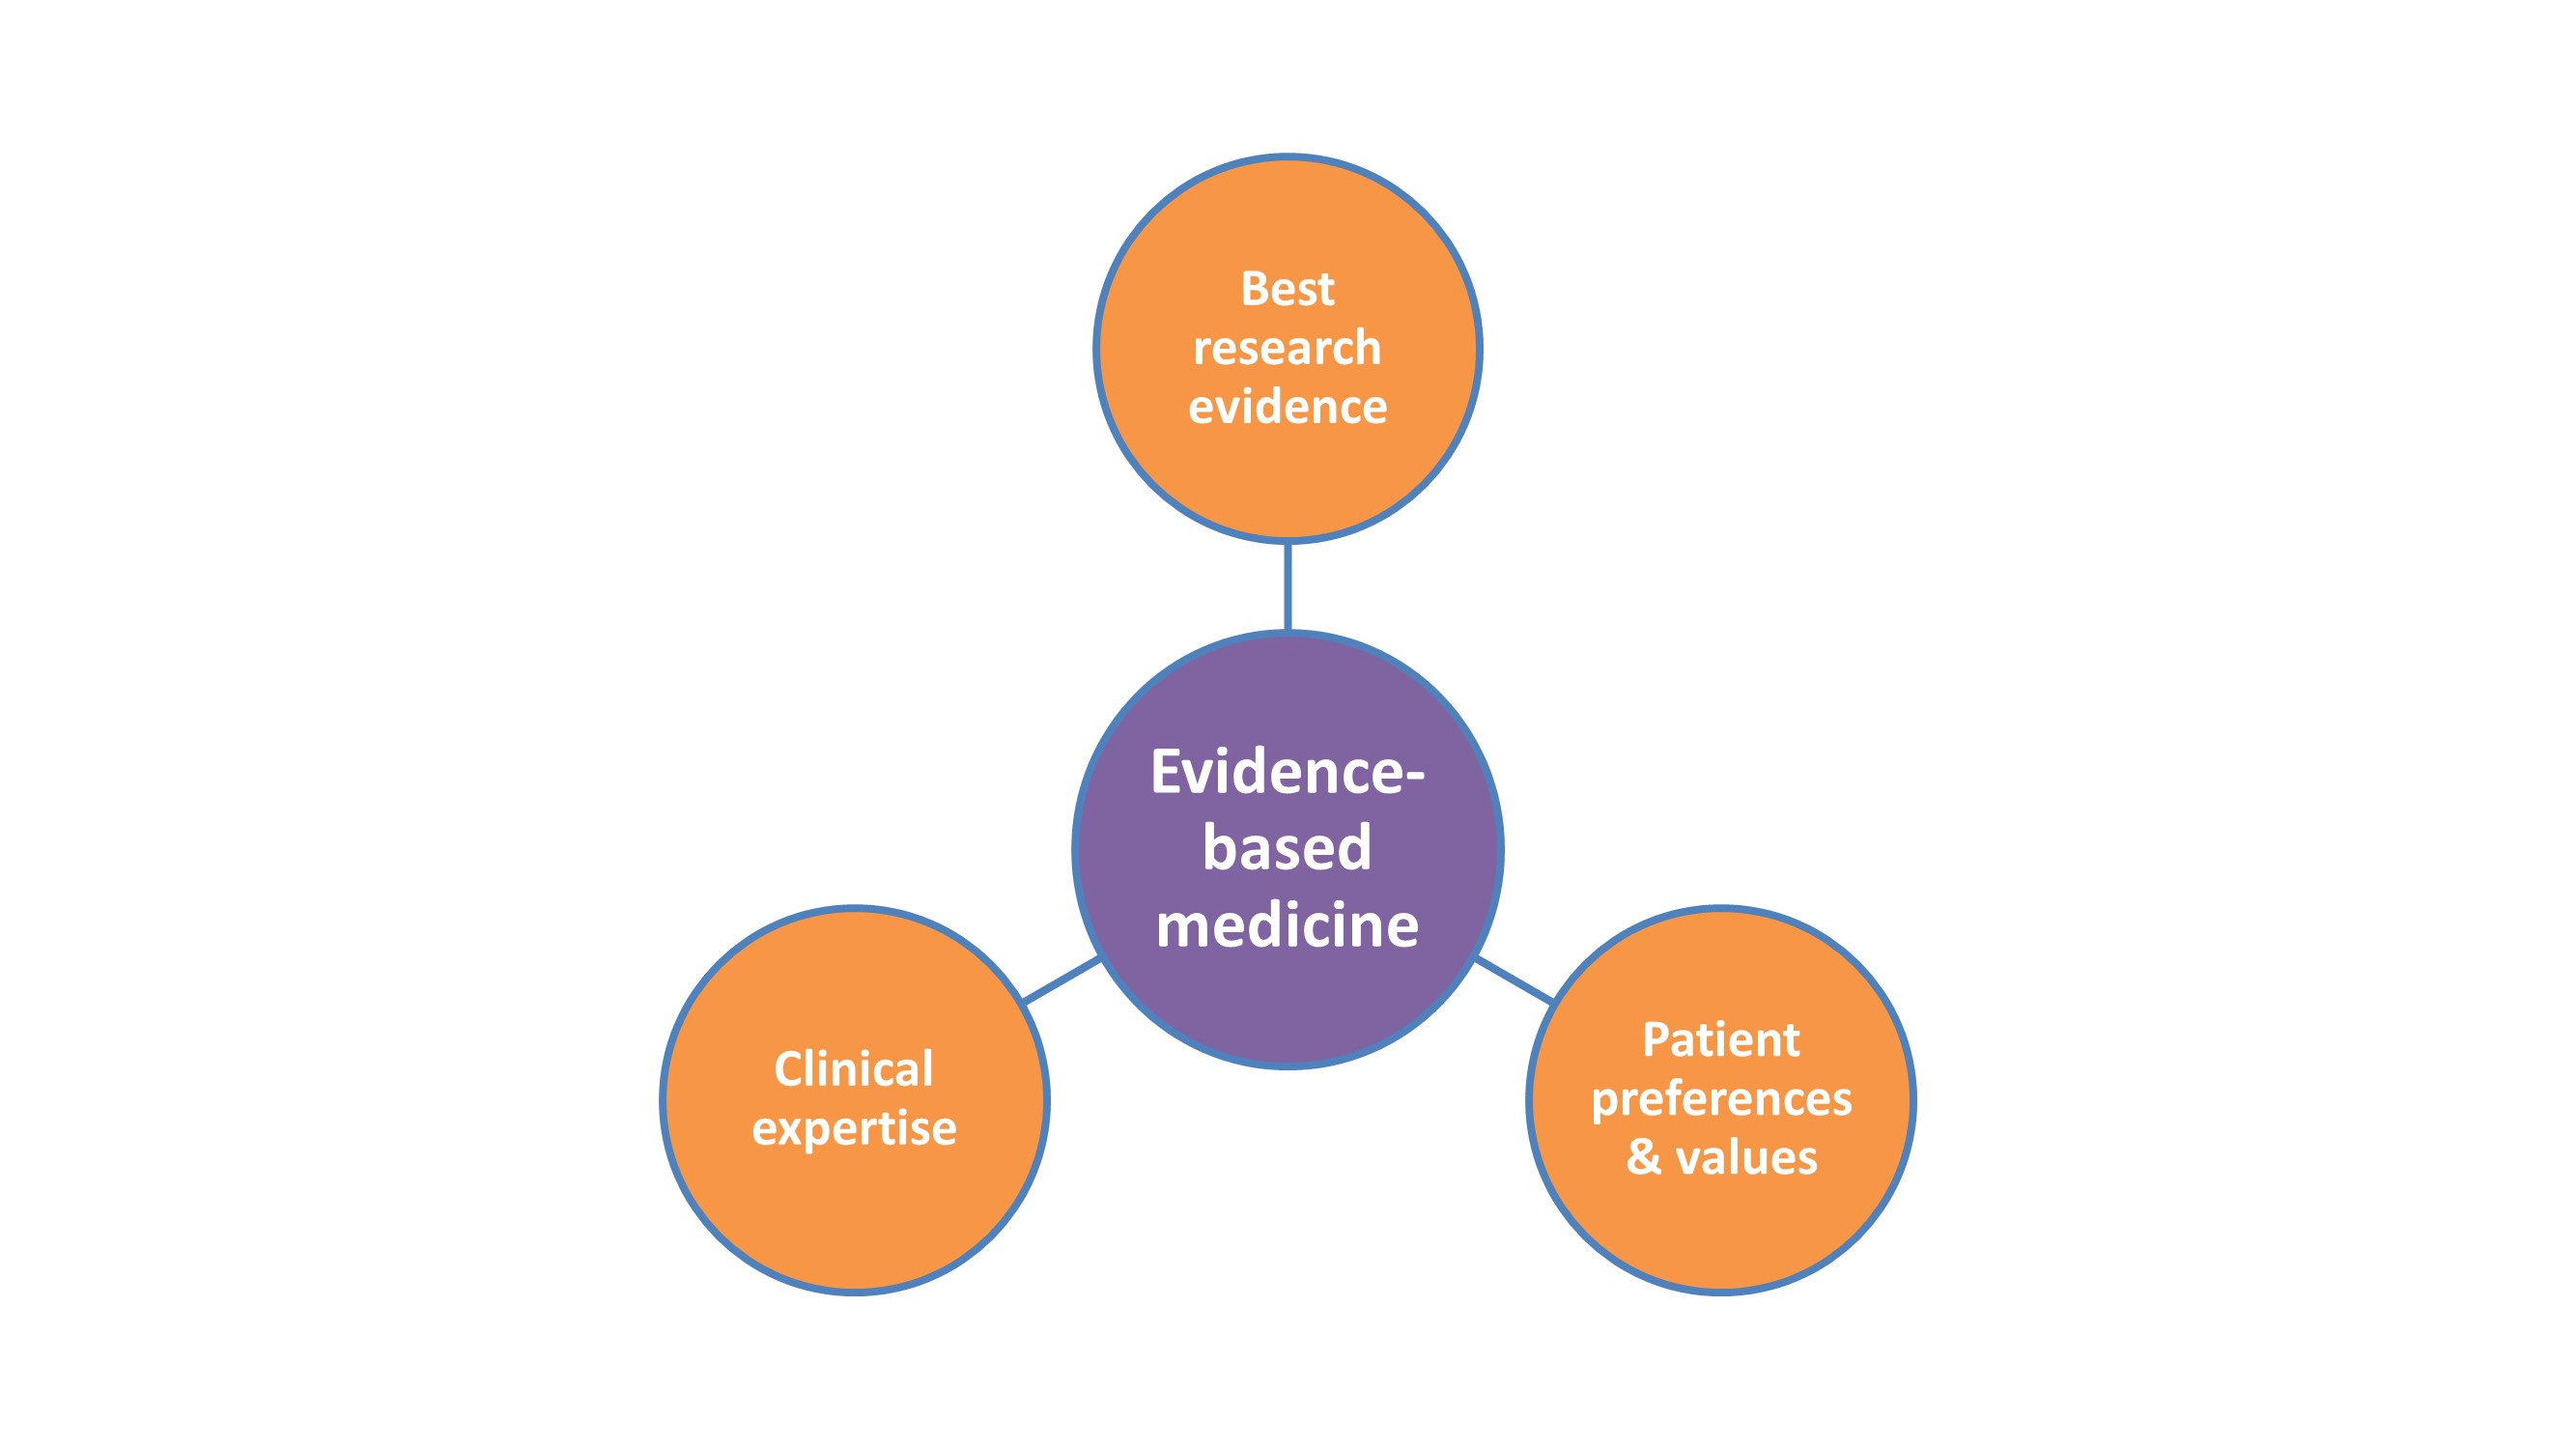 three parts of evidence-based medicine (best research evidence, clinical experience, and patient preferences)